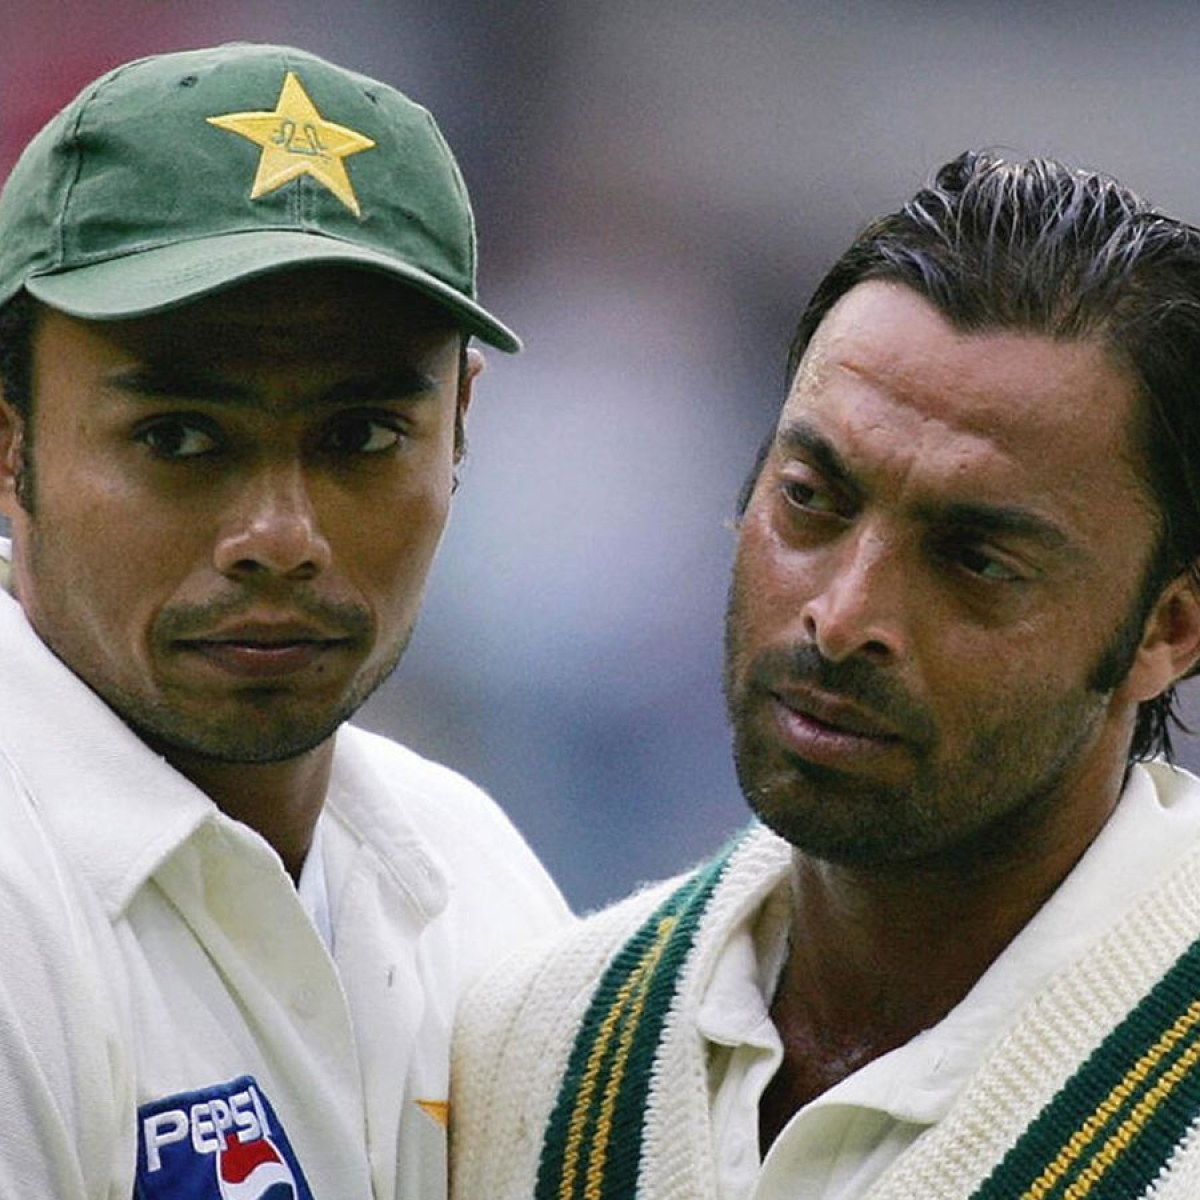 'His words are as blunt as his bowling': Danish Kaneria on Shoaib Akhtar pulling him in headlines